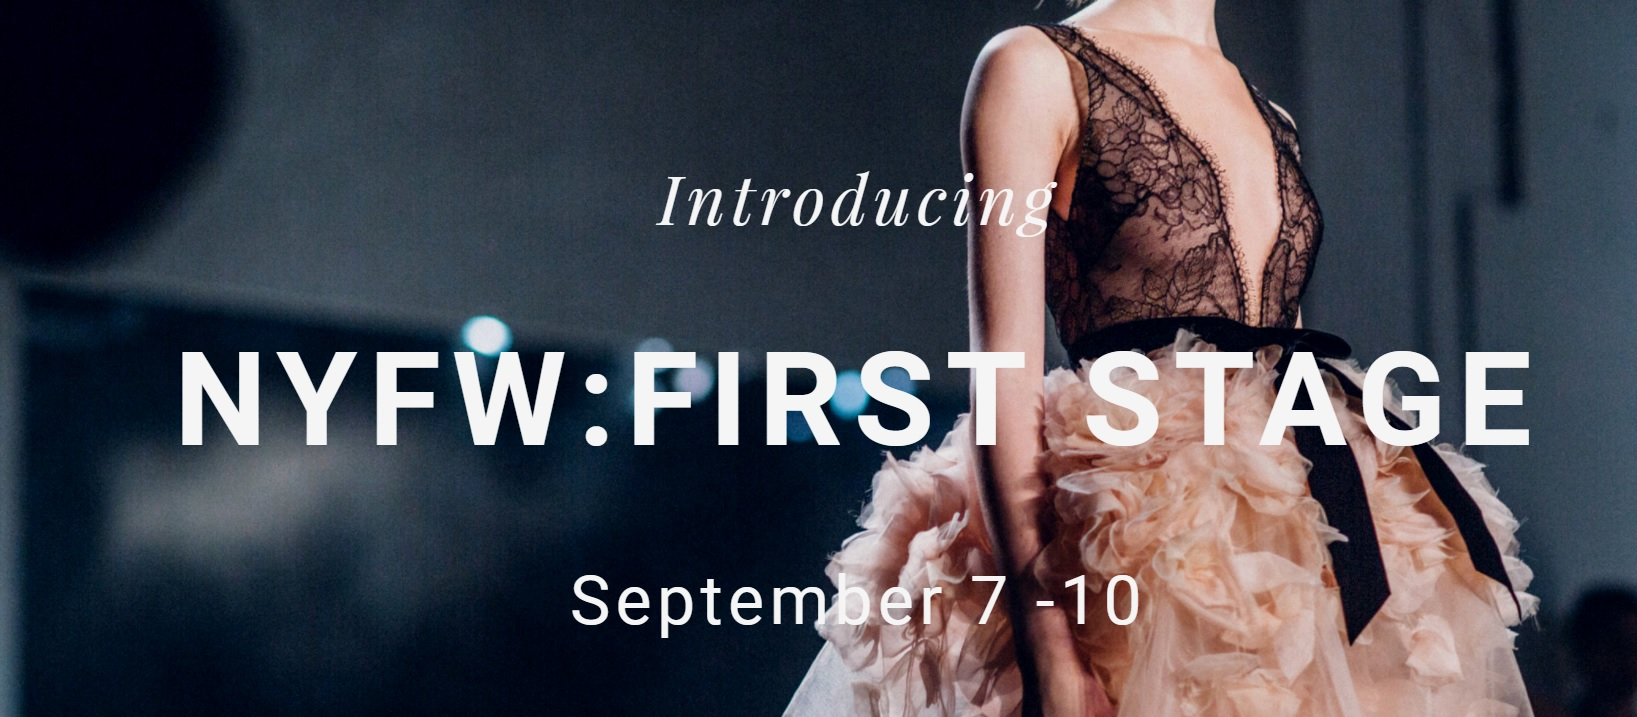 NYFW First Stage